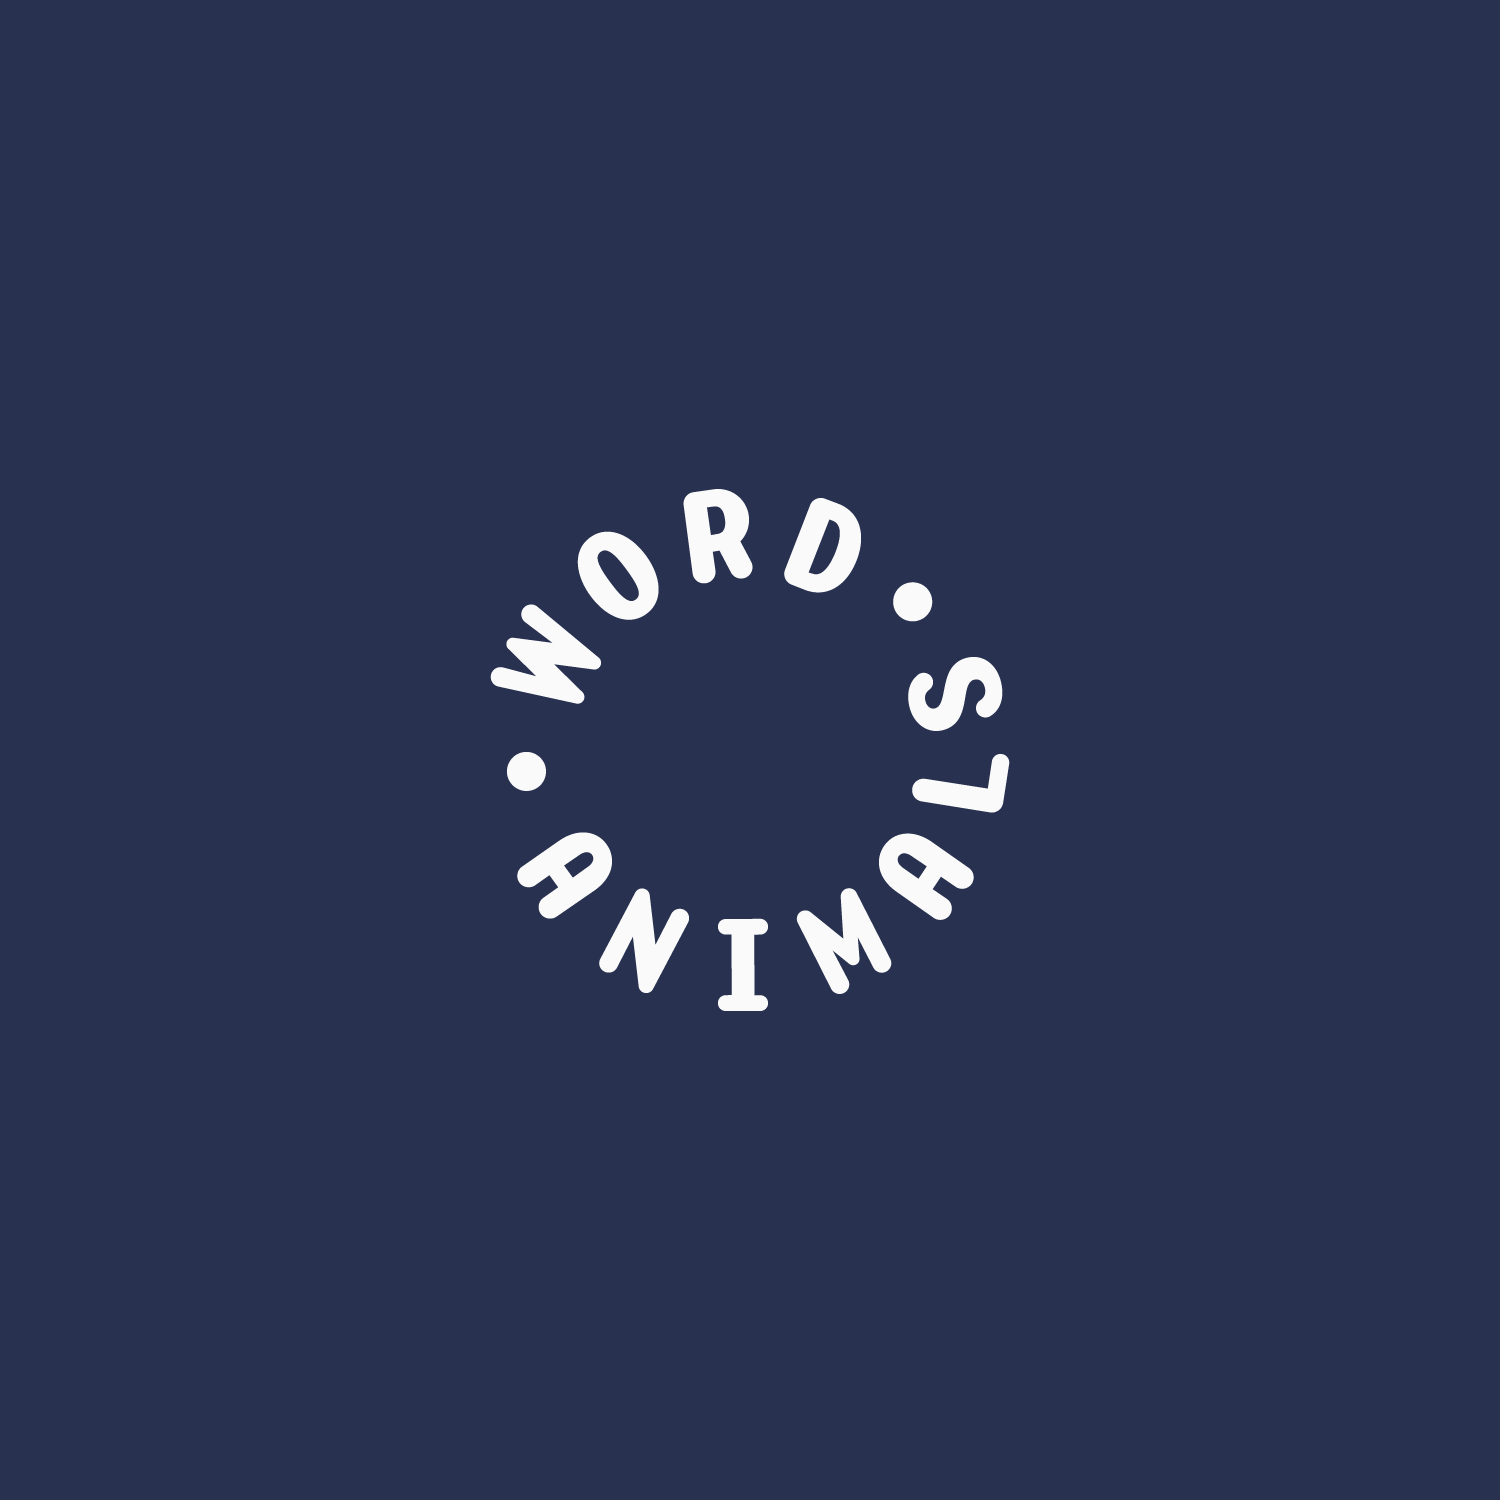 White circular Word Animals badge on a blue background